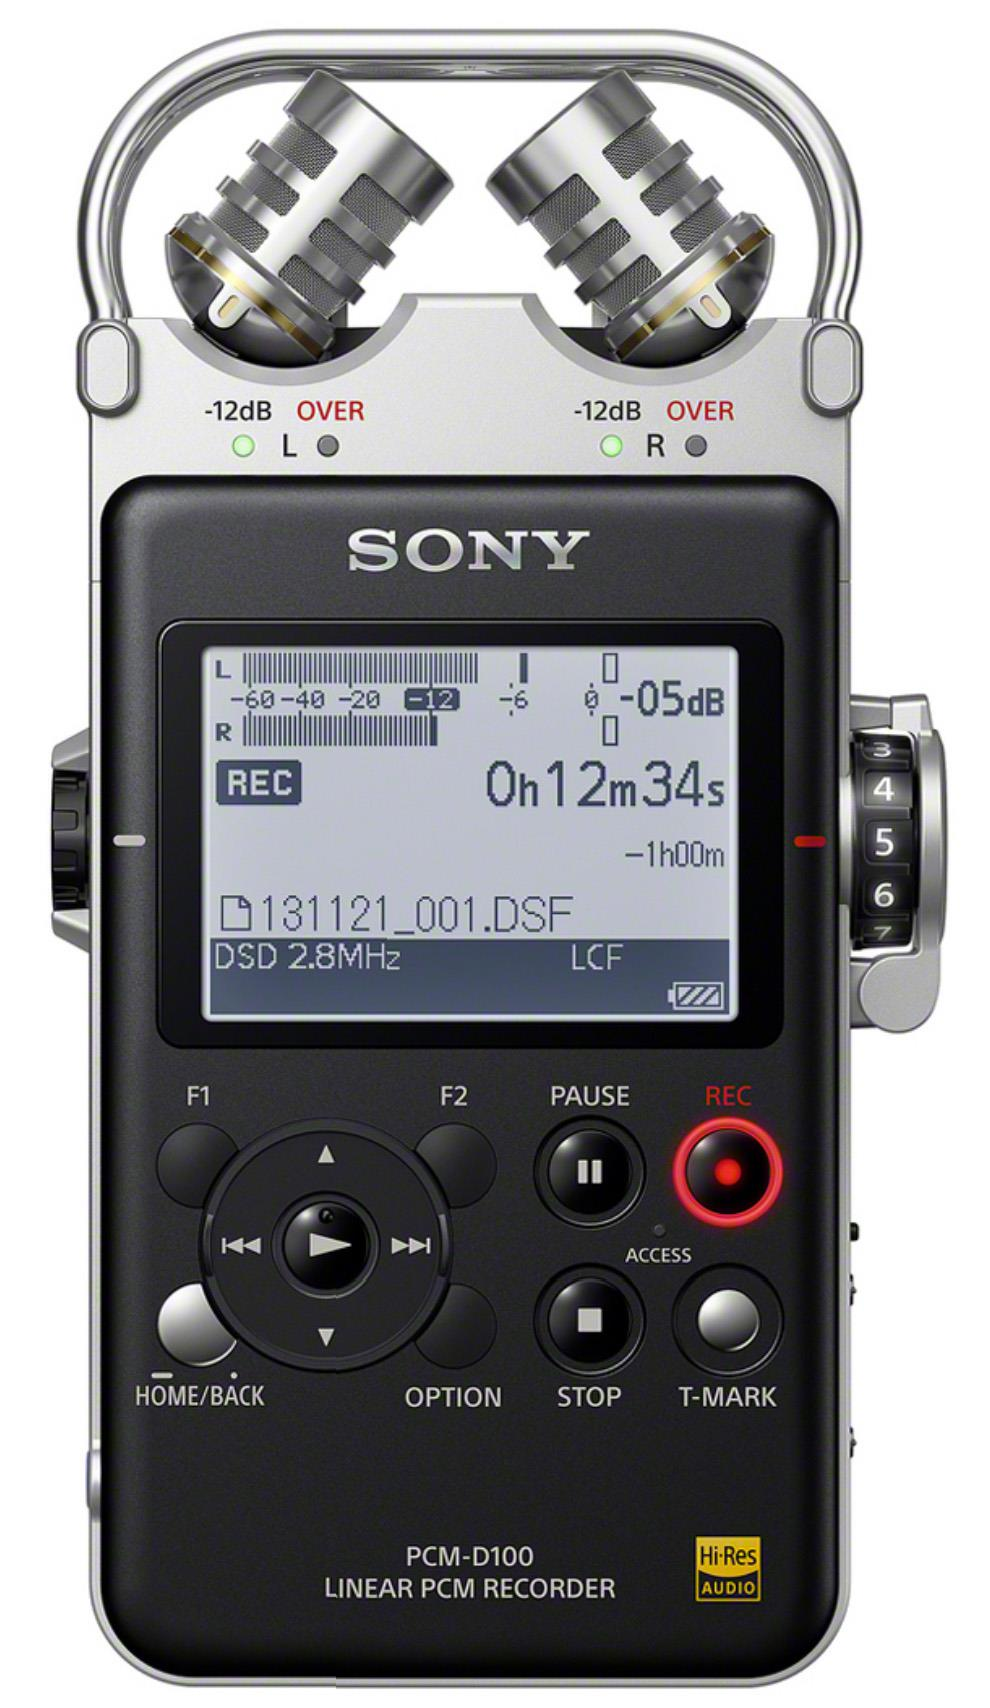 Sony PCM-D100 Linear PCM Recorder